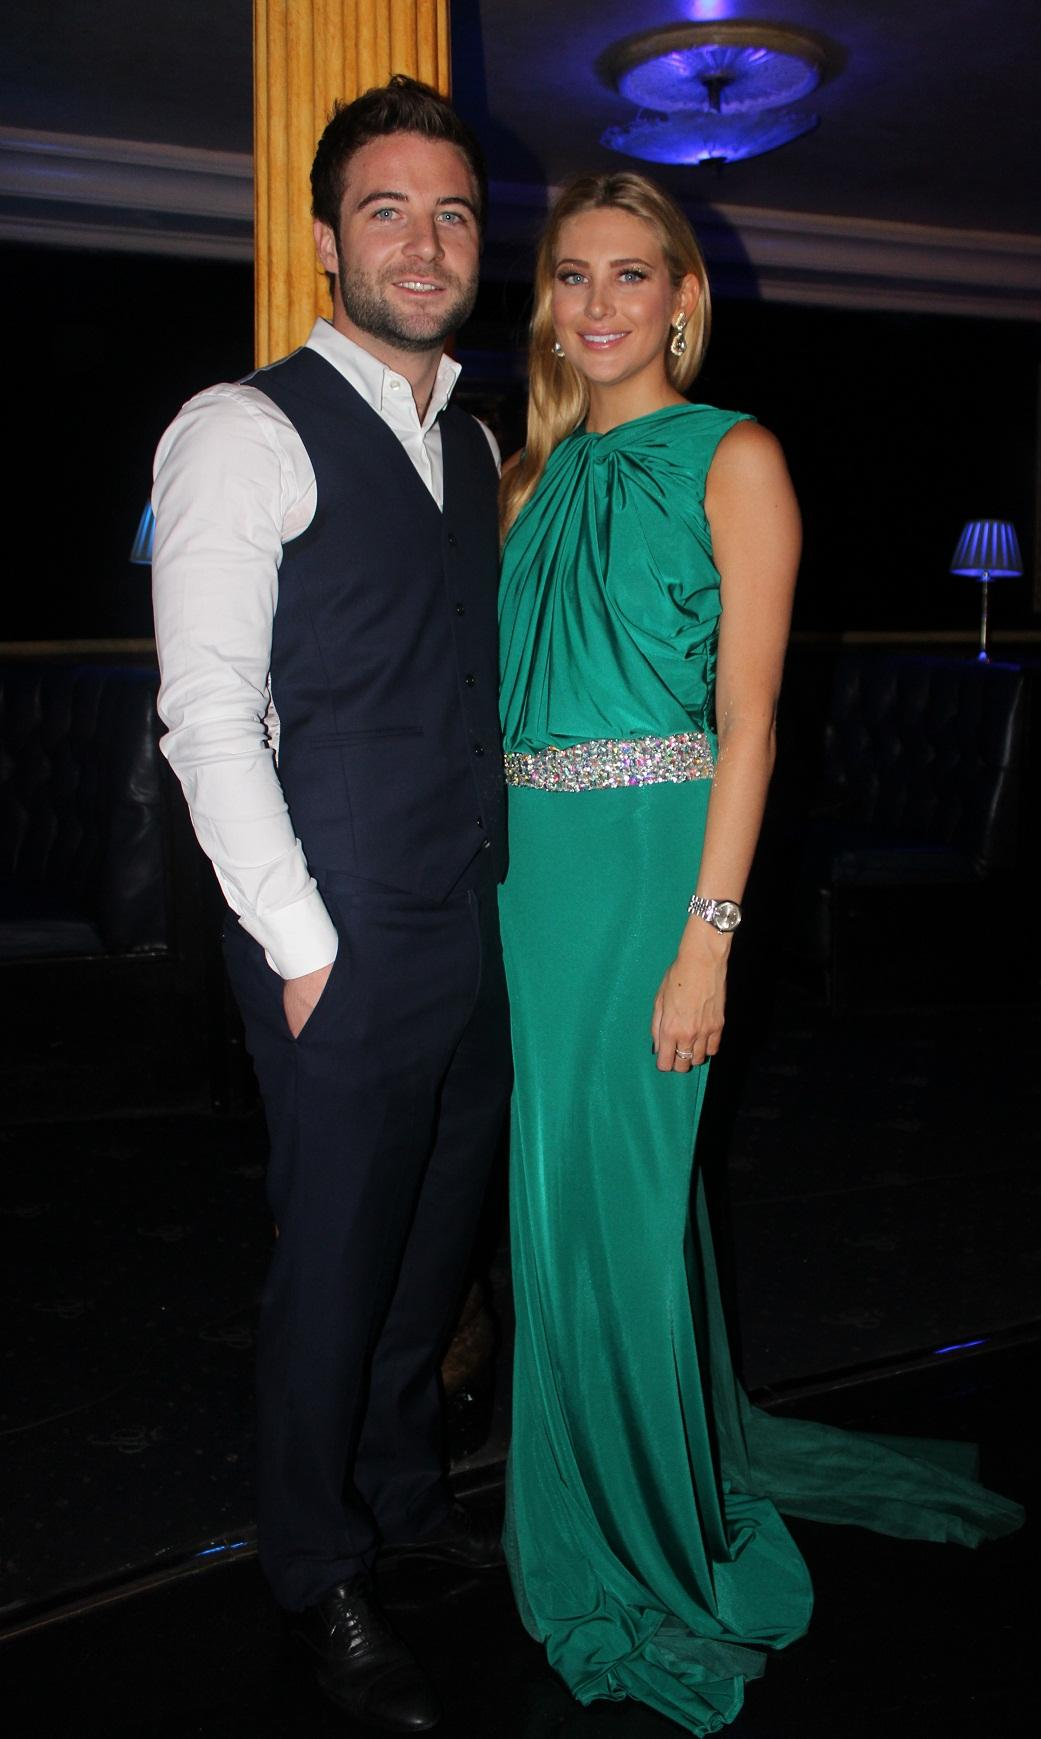 SUPER GLAM! @joshshepherd88 and @stephaniepratt #madeinchelsea http://t.co/5bteyJlPKK